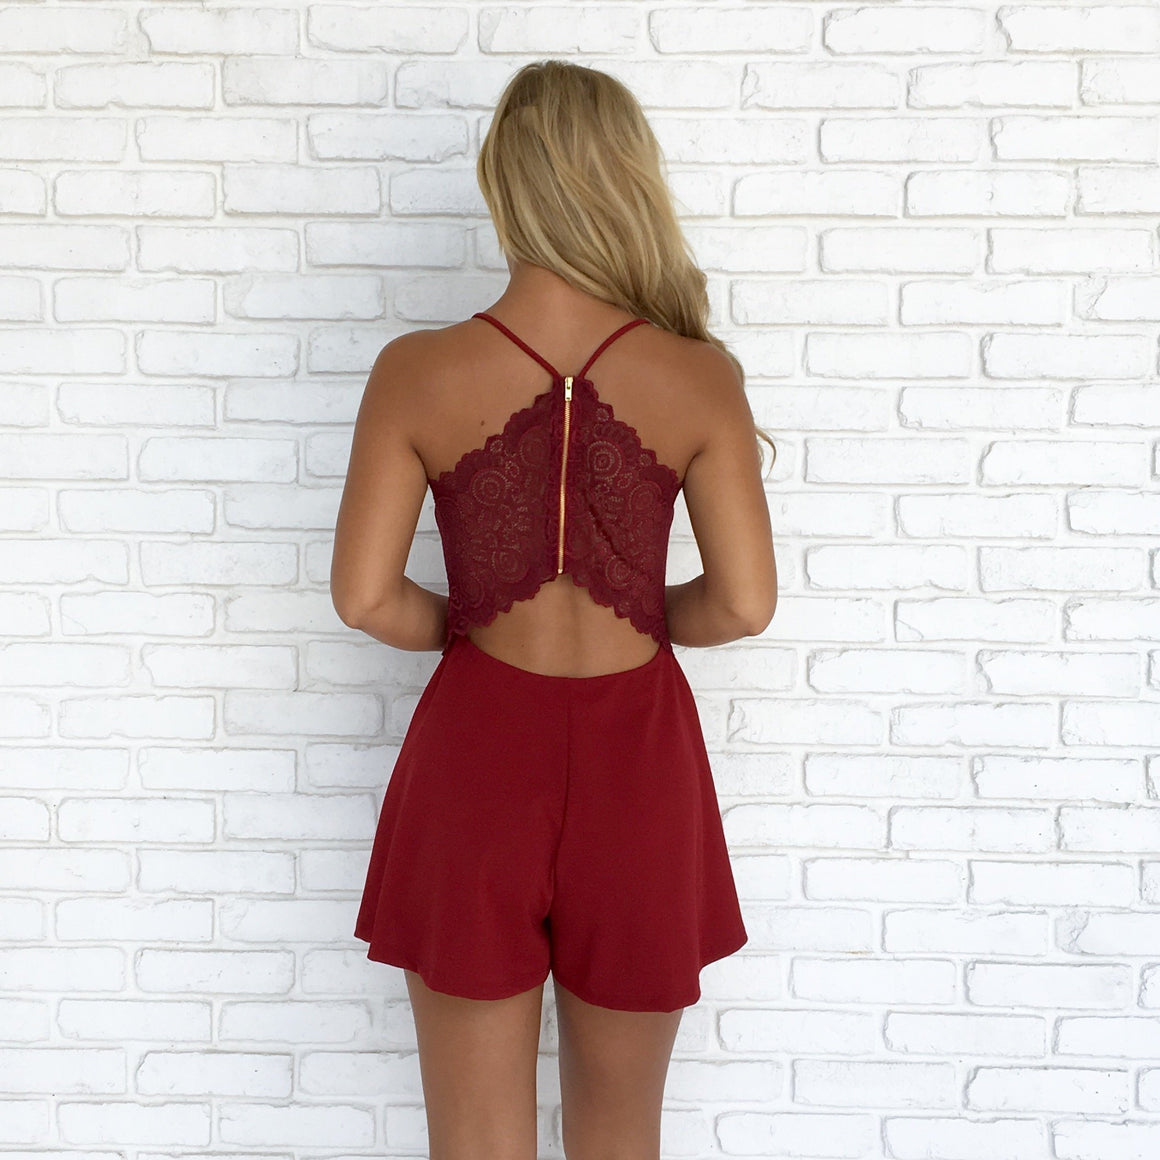 Gift Giving Lace Romper in Burgundy - Dainty Hooligan